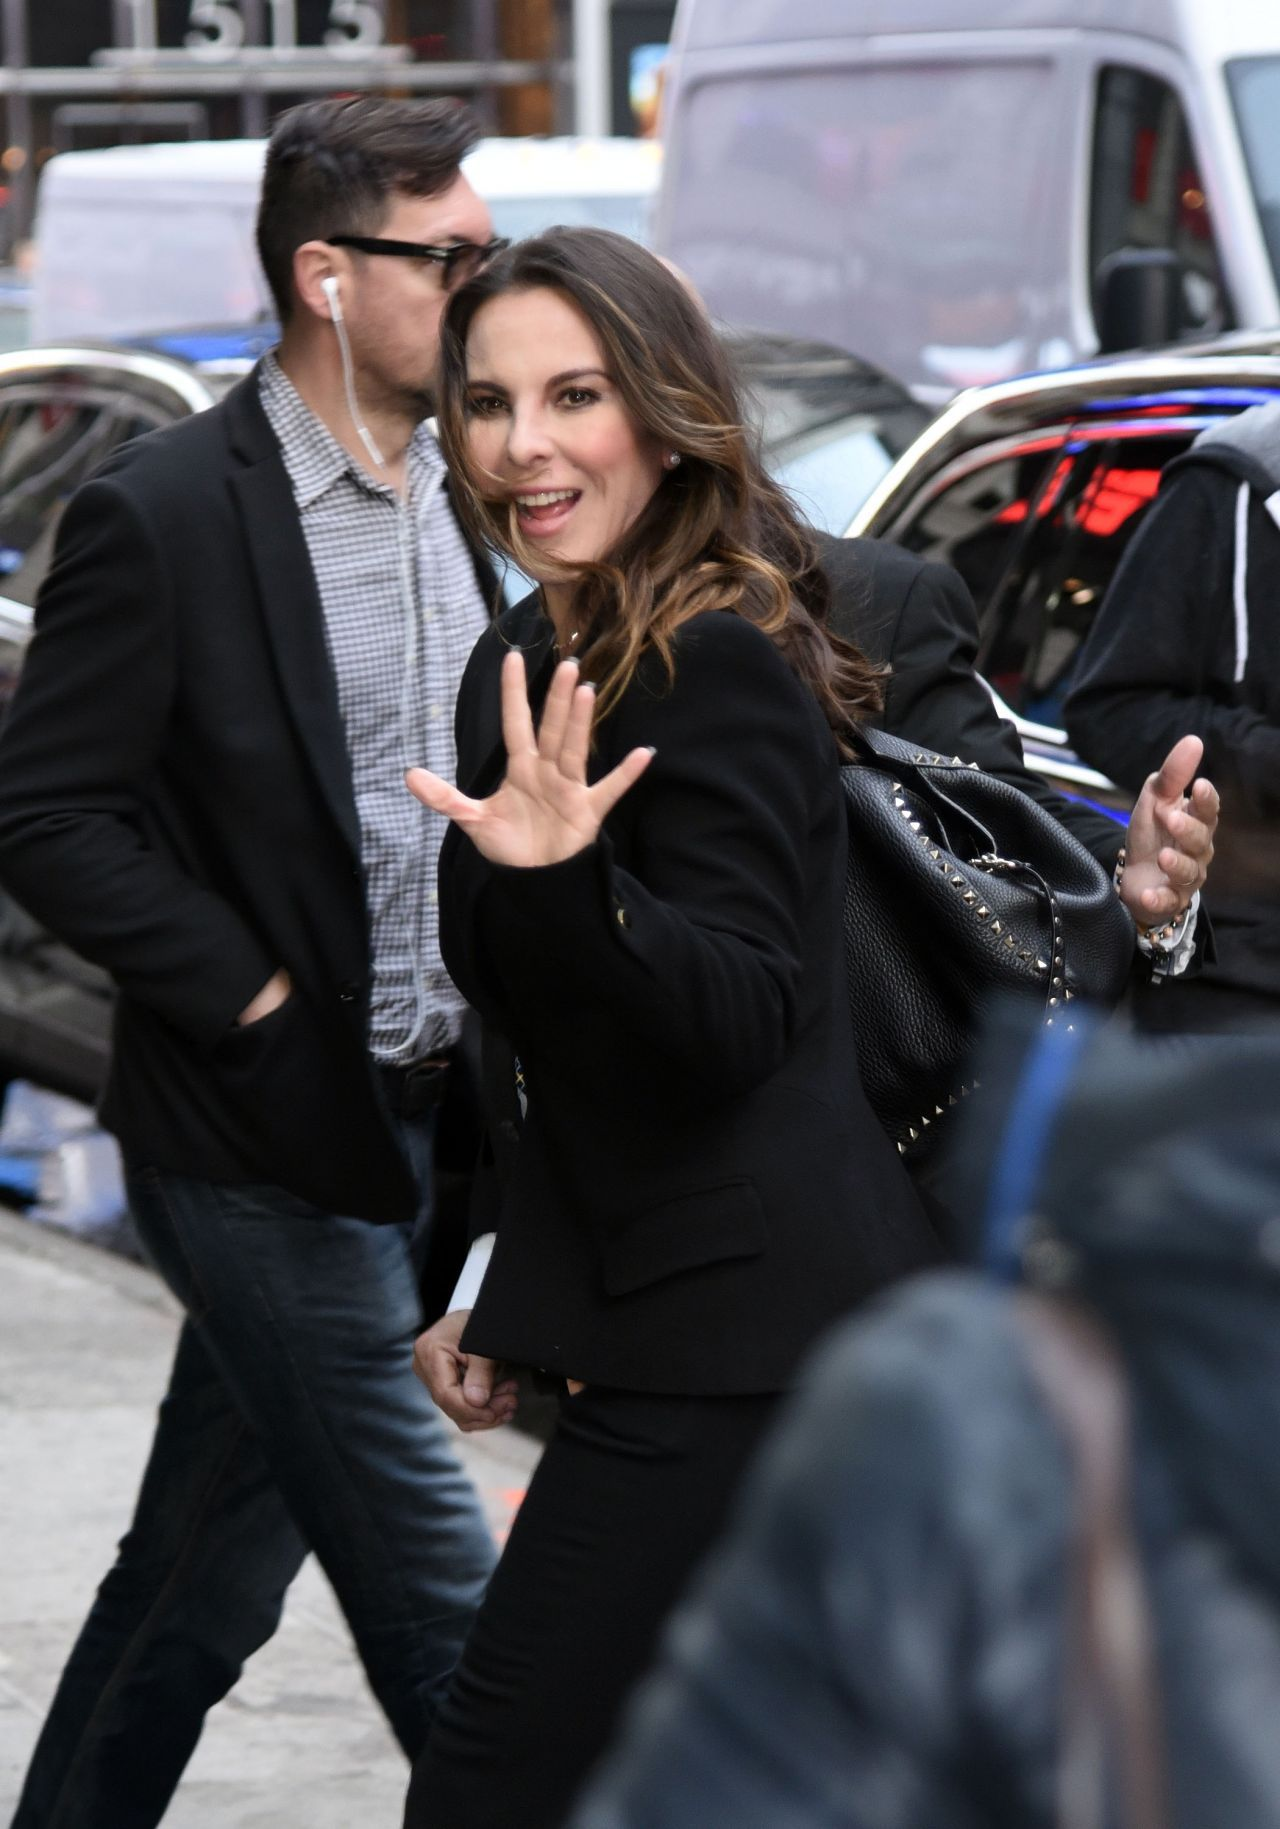 Kate del castillo arriving to appear on good morning america in nyc nudes (95 photos), Tits Celebrity pics